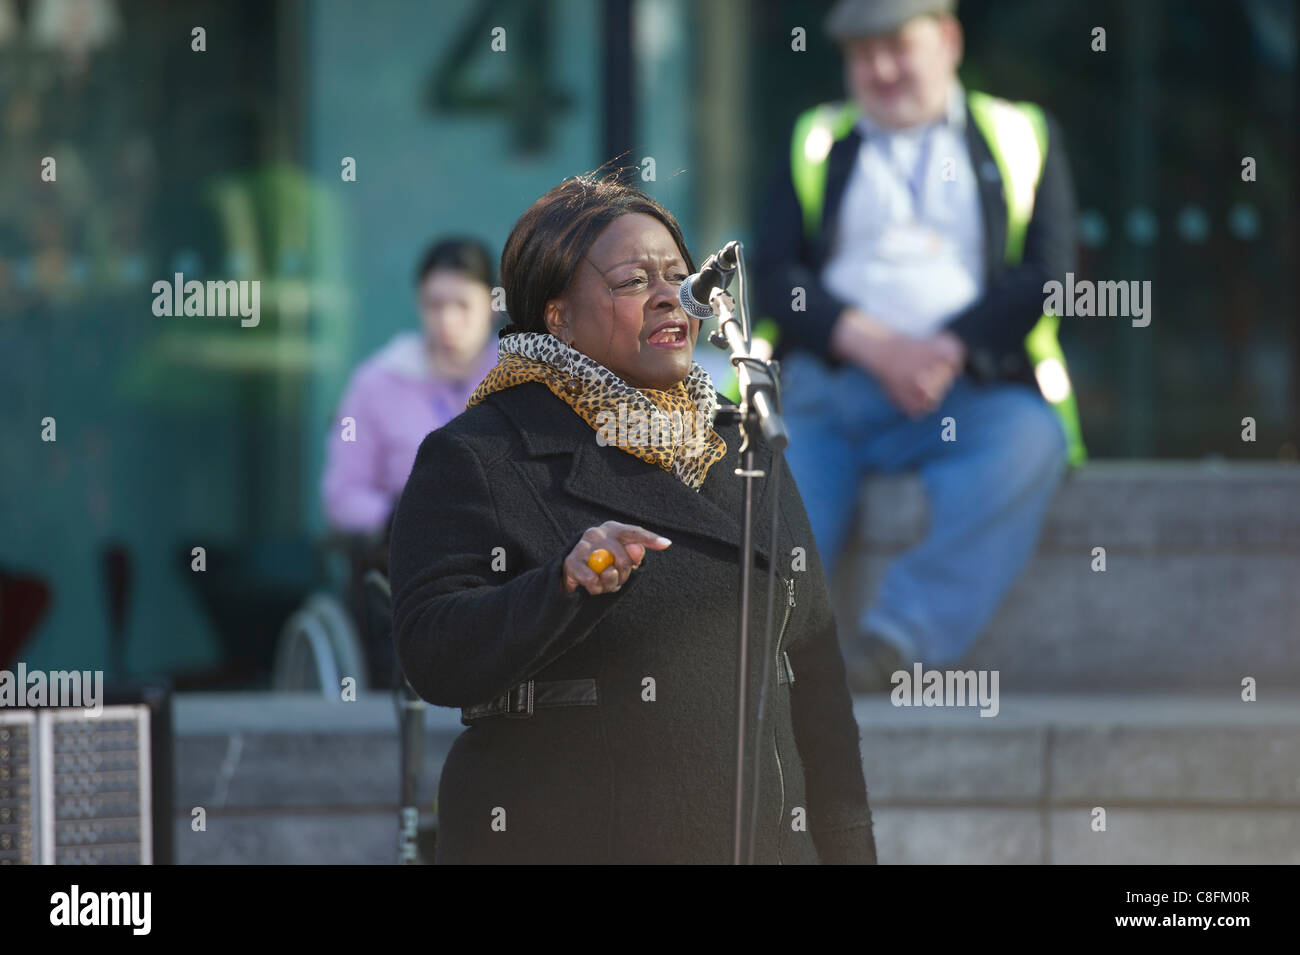 Saturday 22nd October 2011, Queens Way, London. Jeannette Arnold, Chair of the London Assembly and NE London Assembly - Stock Image